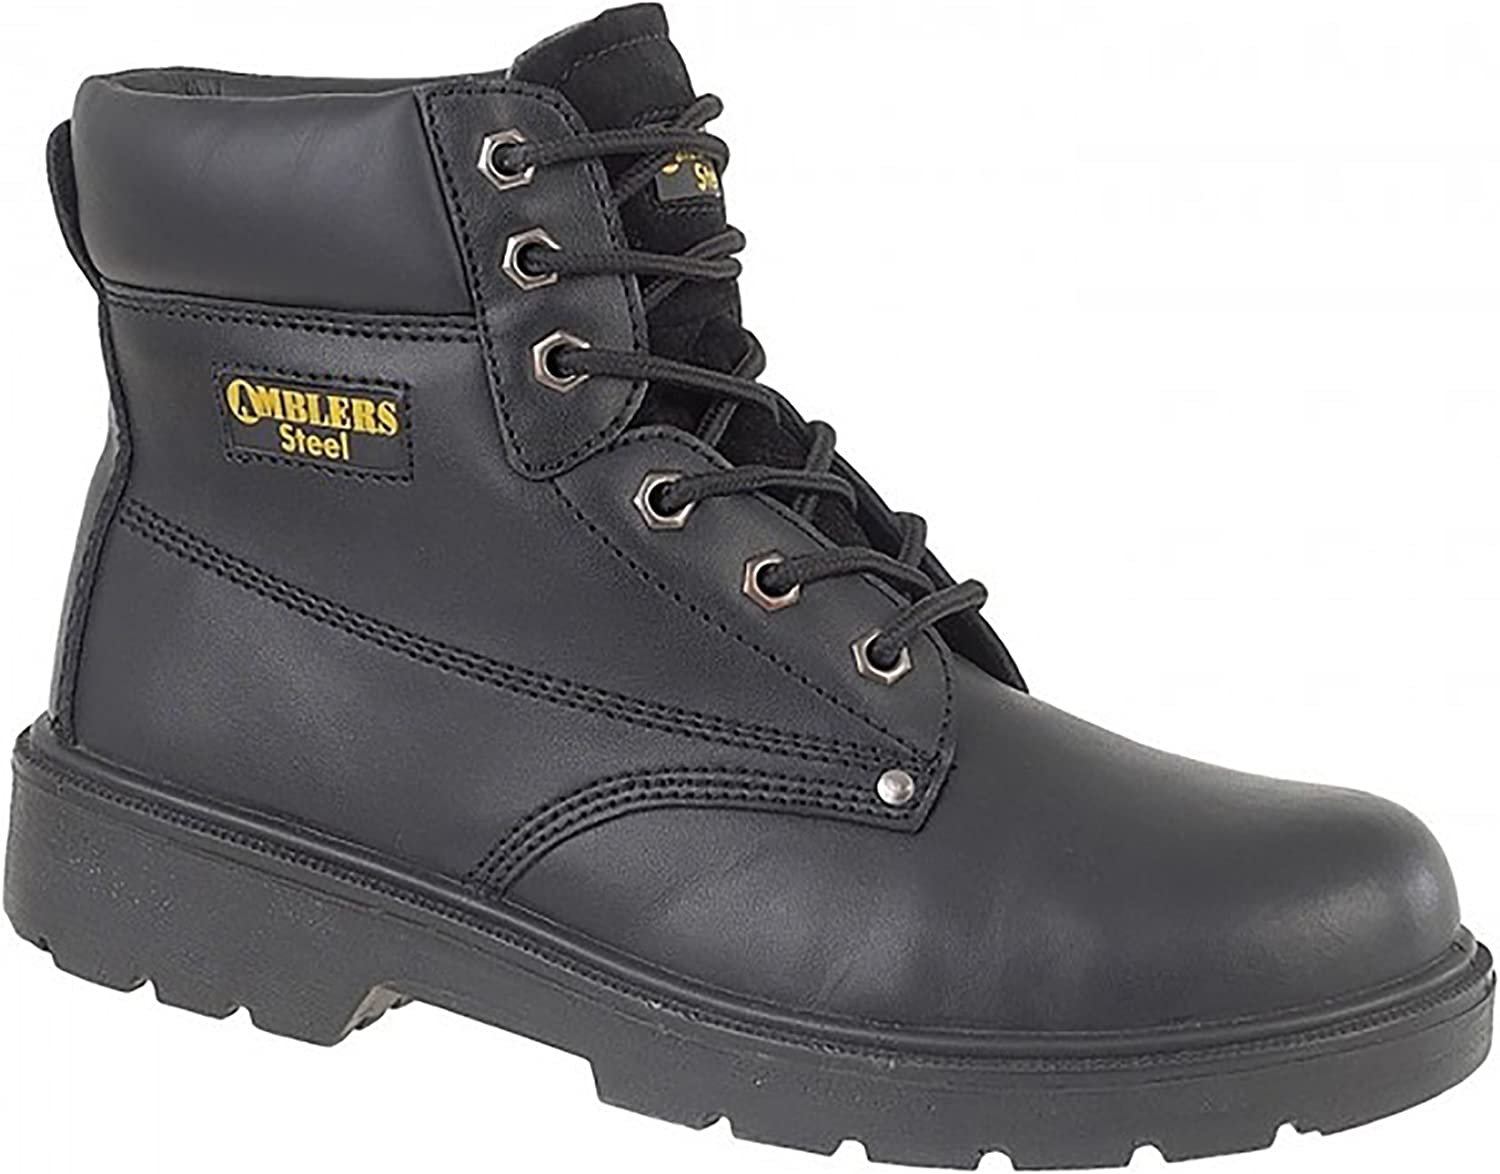 Amblers Steel FS159 Safety S3 Boot Womens Ladies Boots